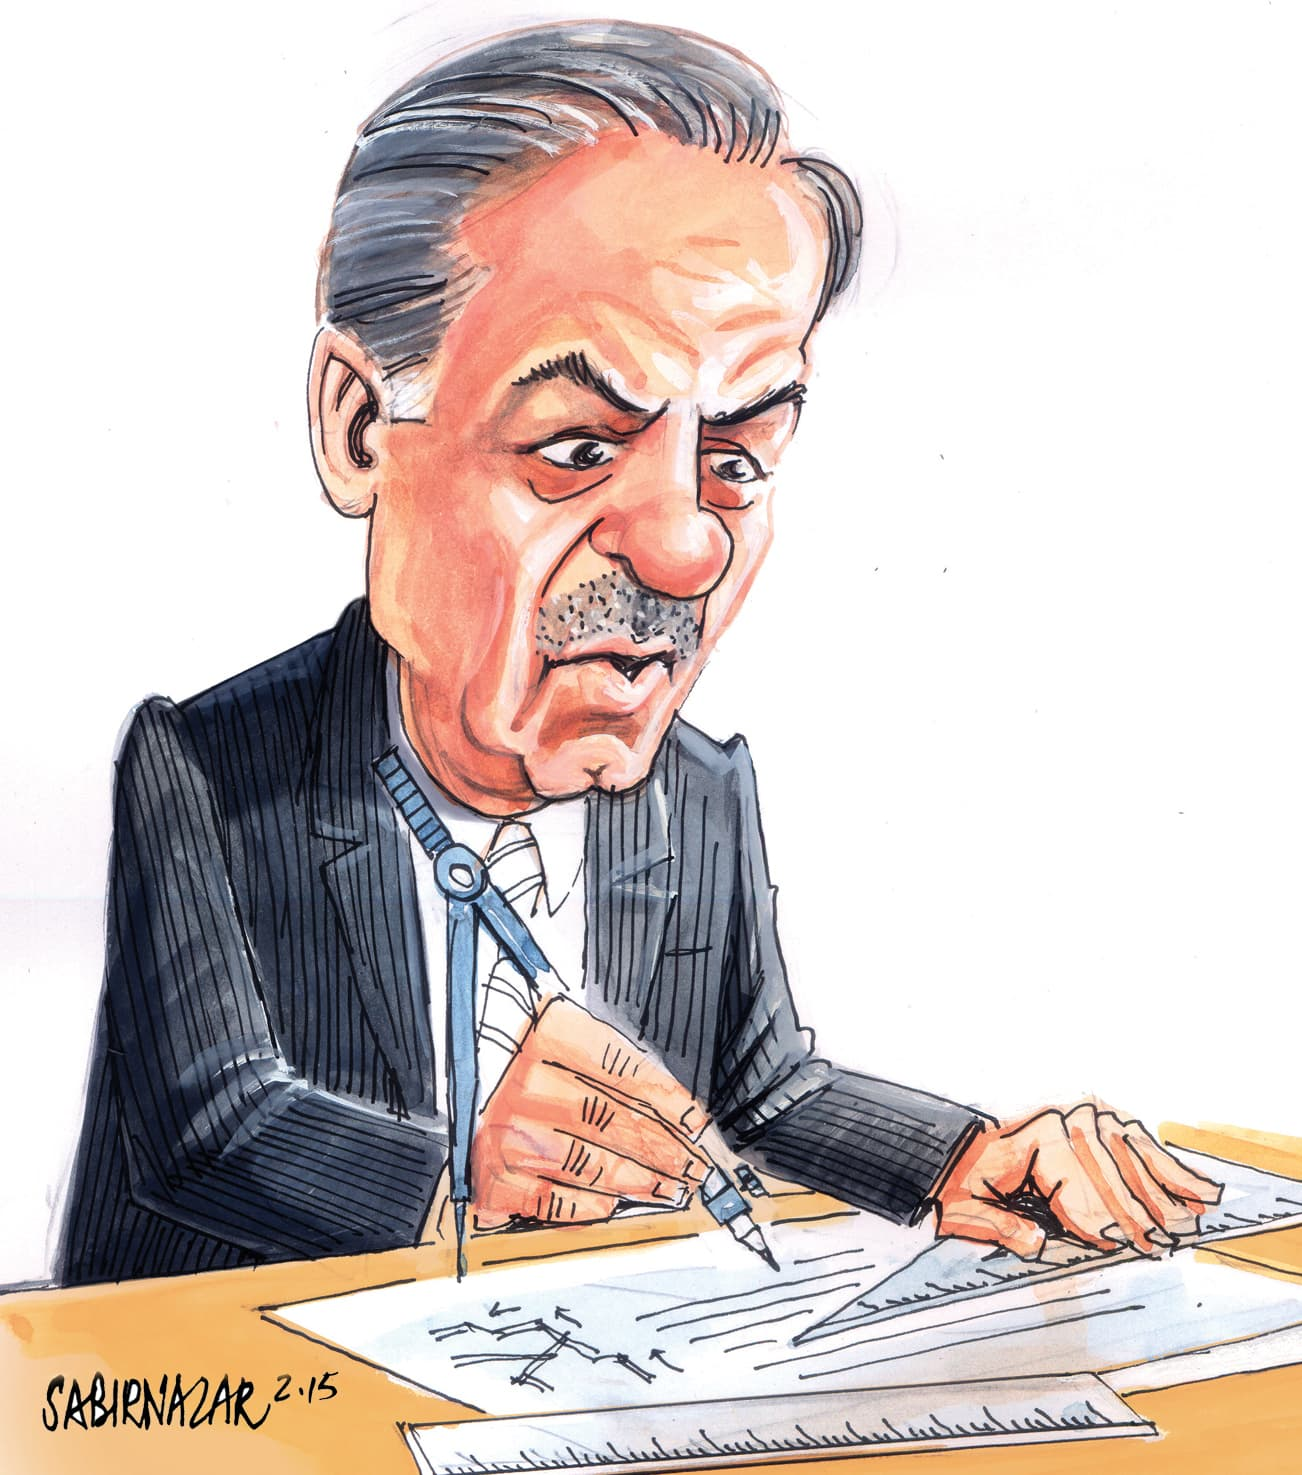 – Illustration by Sabir Nazar